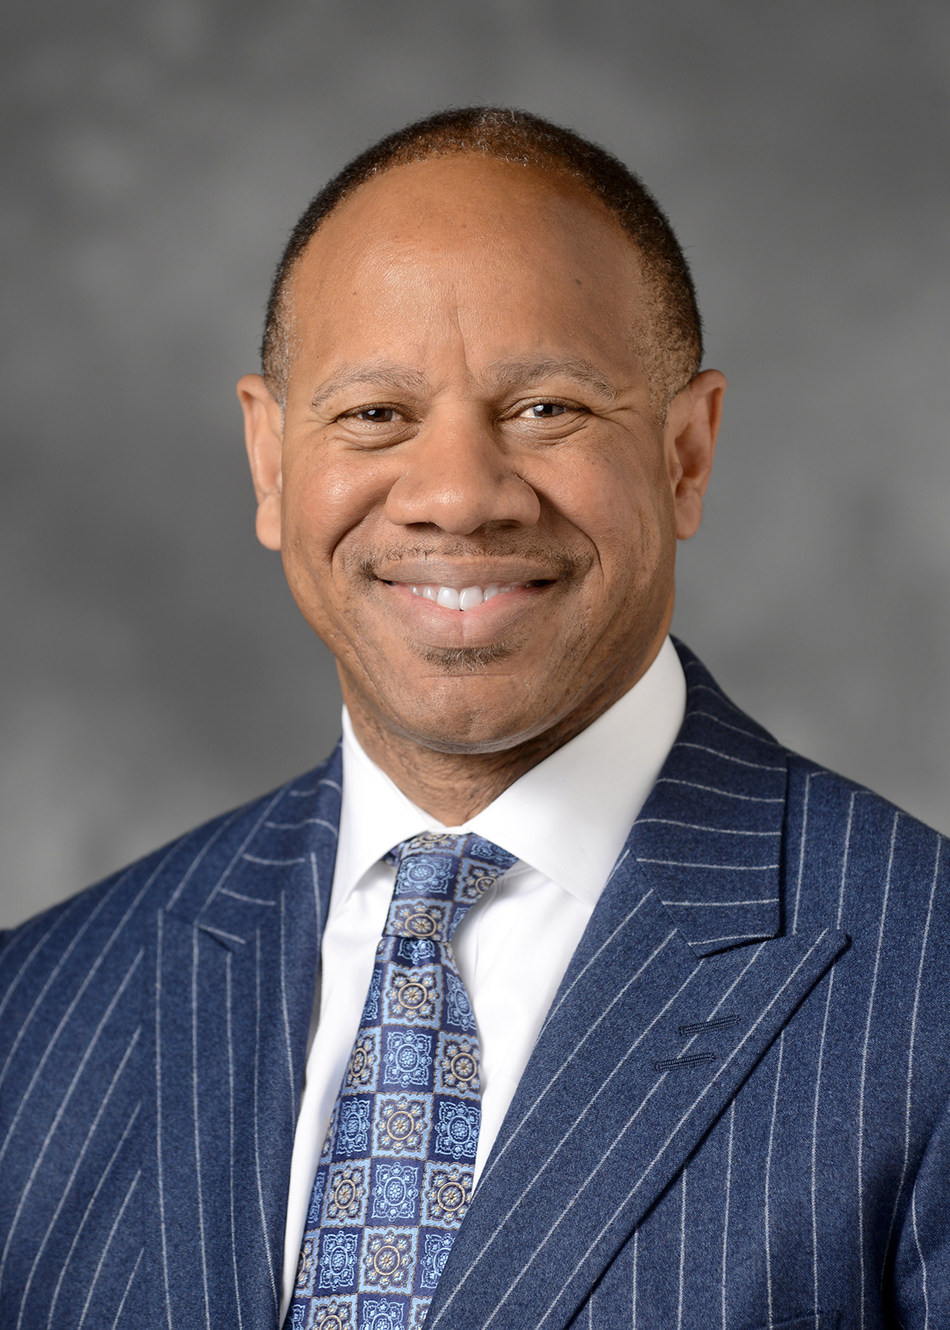 Wright Lassiter III, president and CEO, Henry Ford Health System